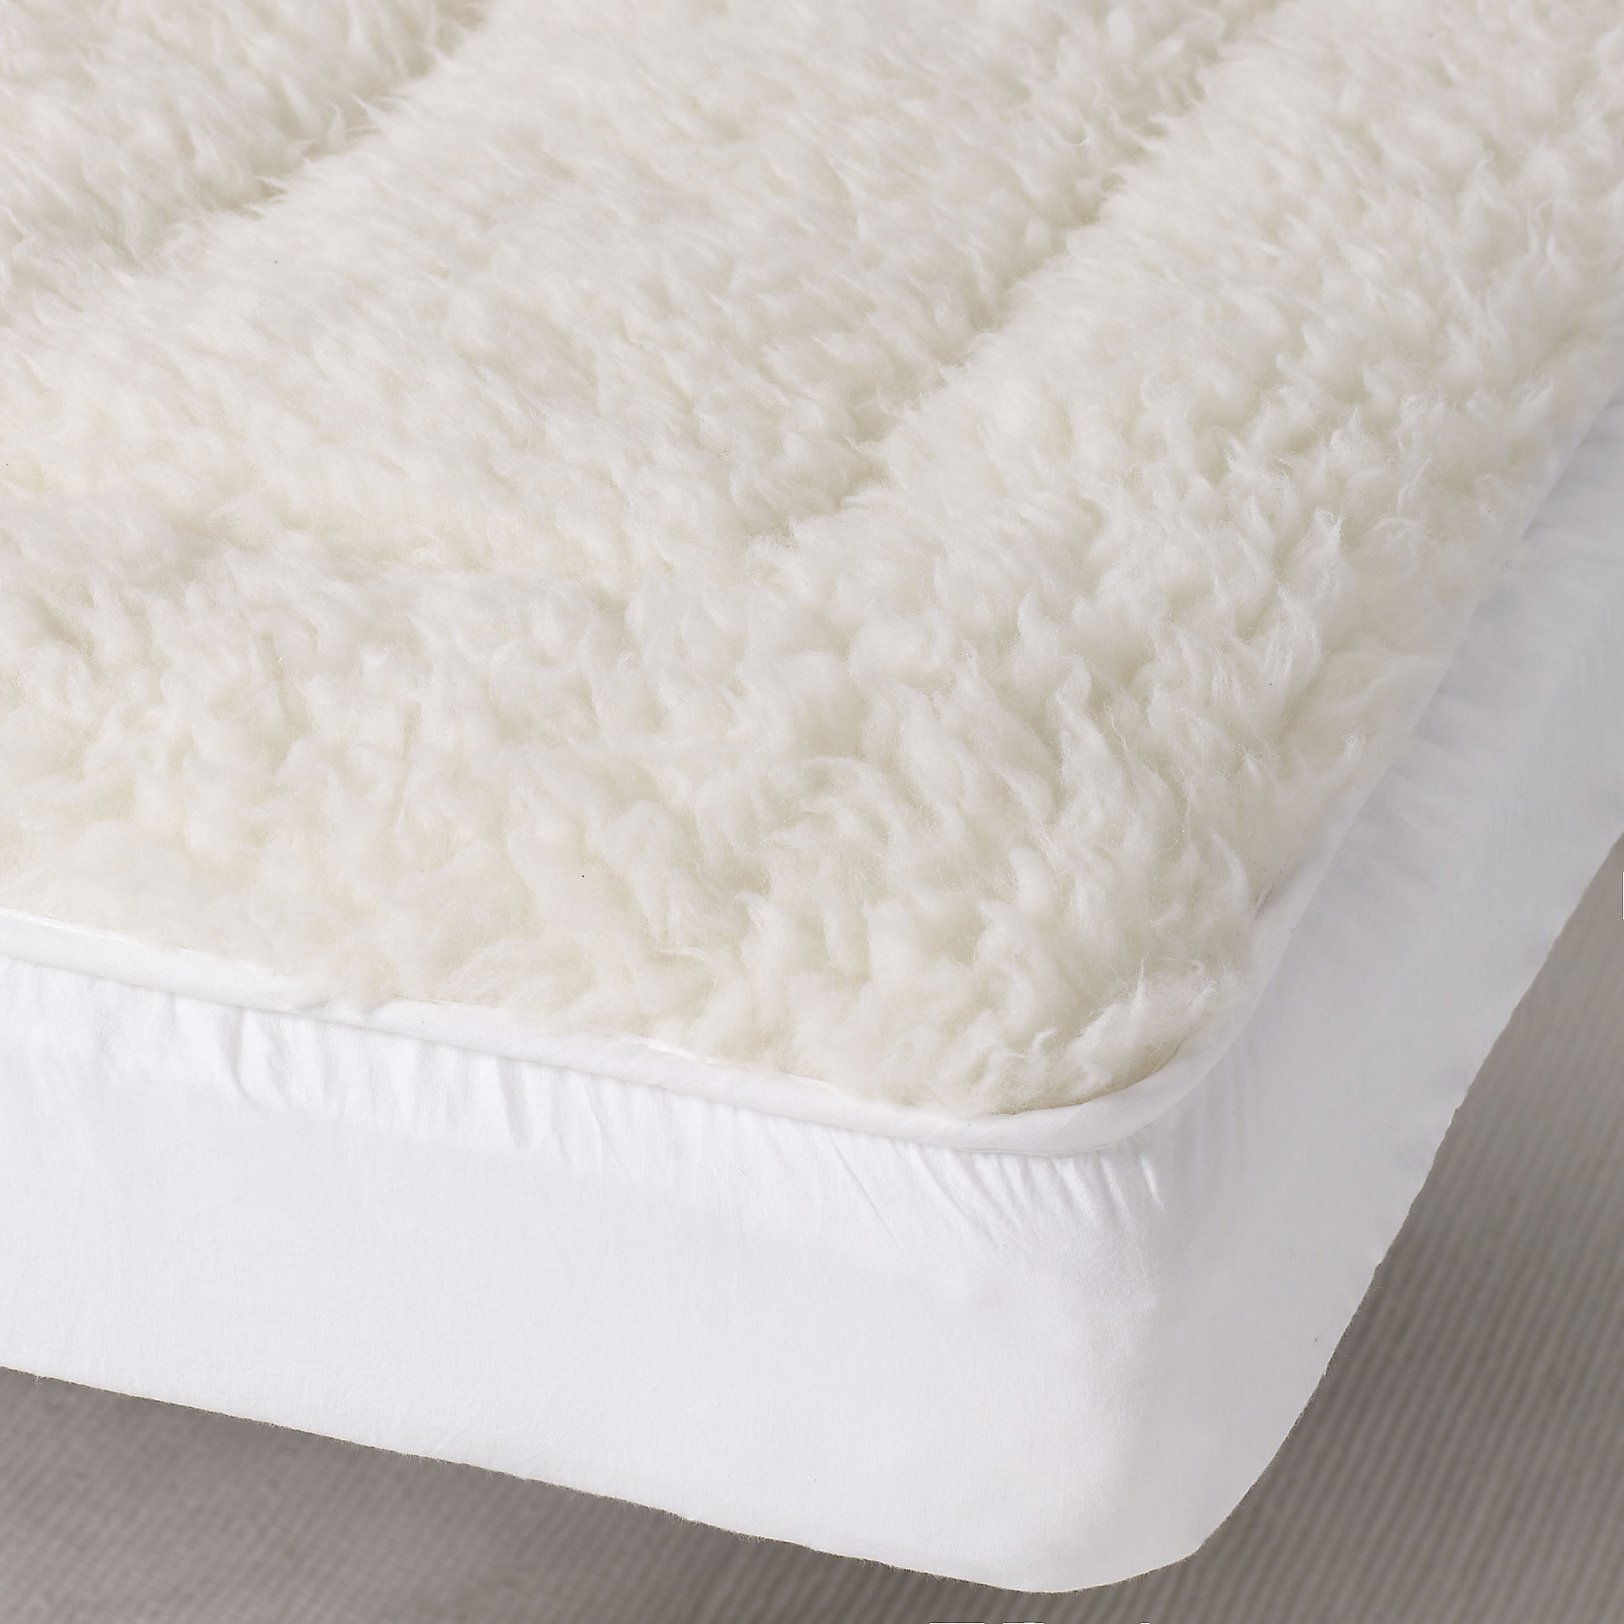 Cot Bed Mattress Topper